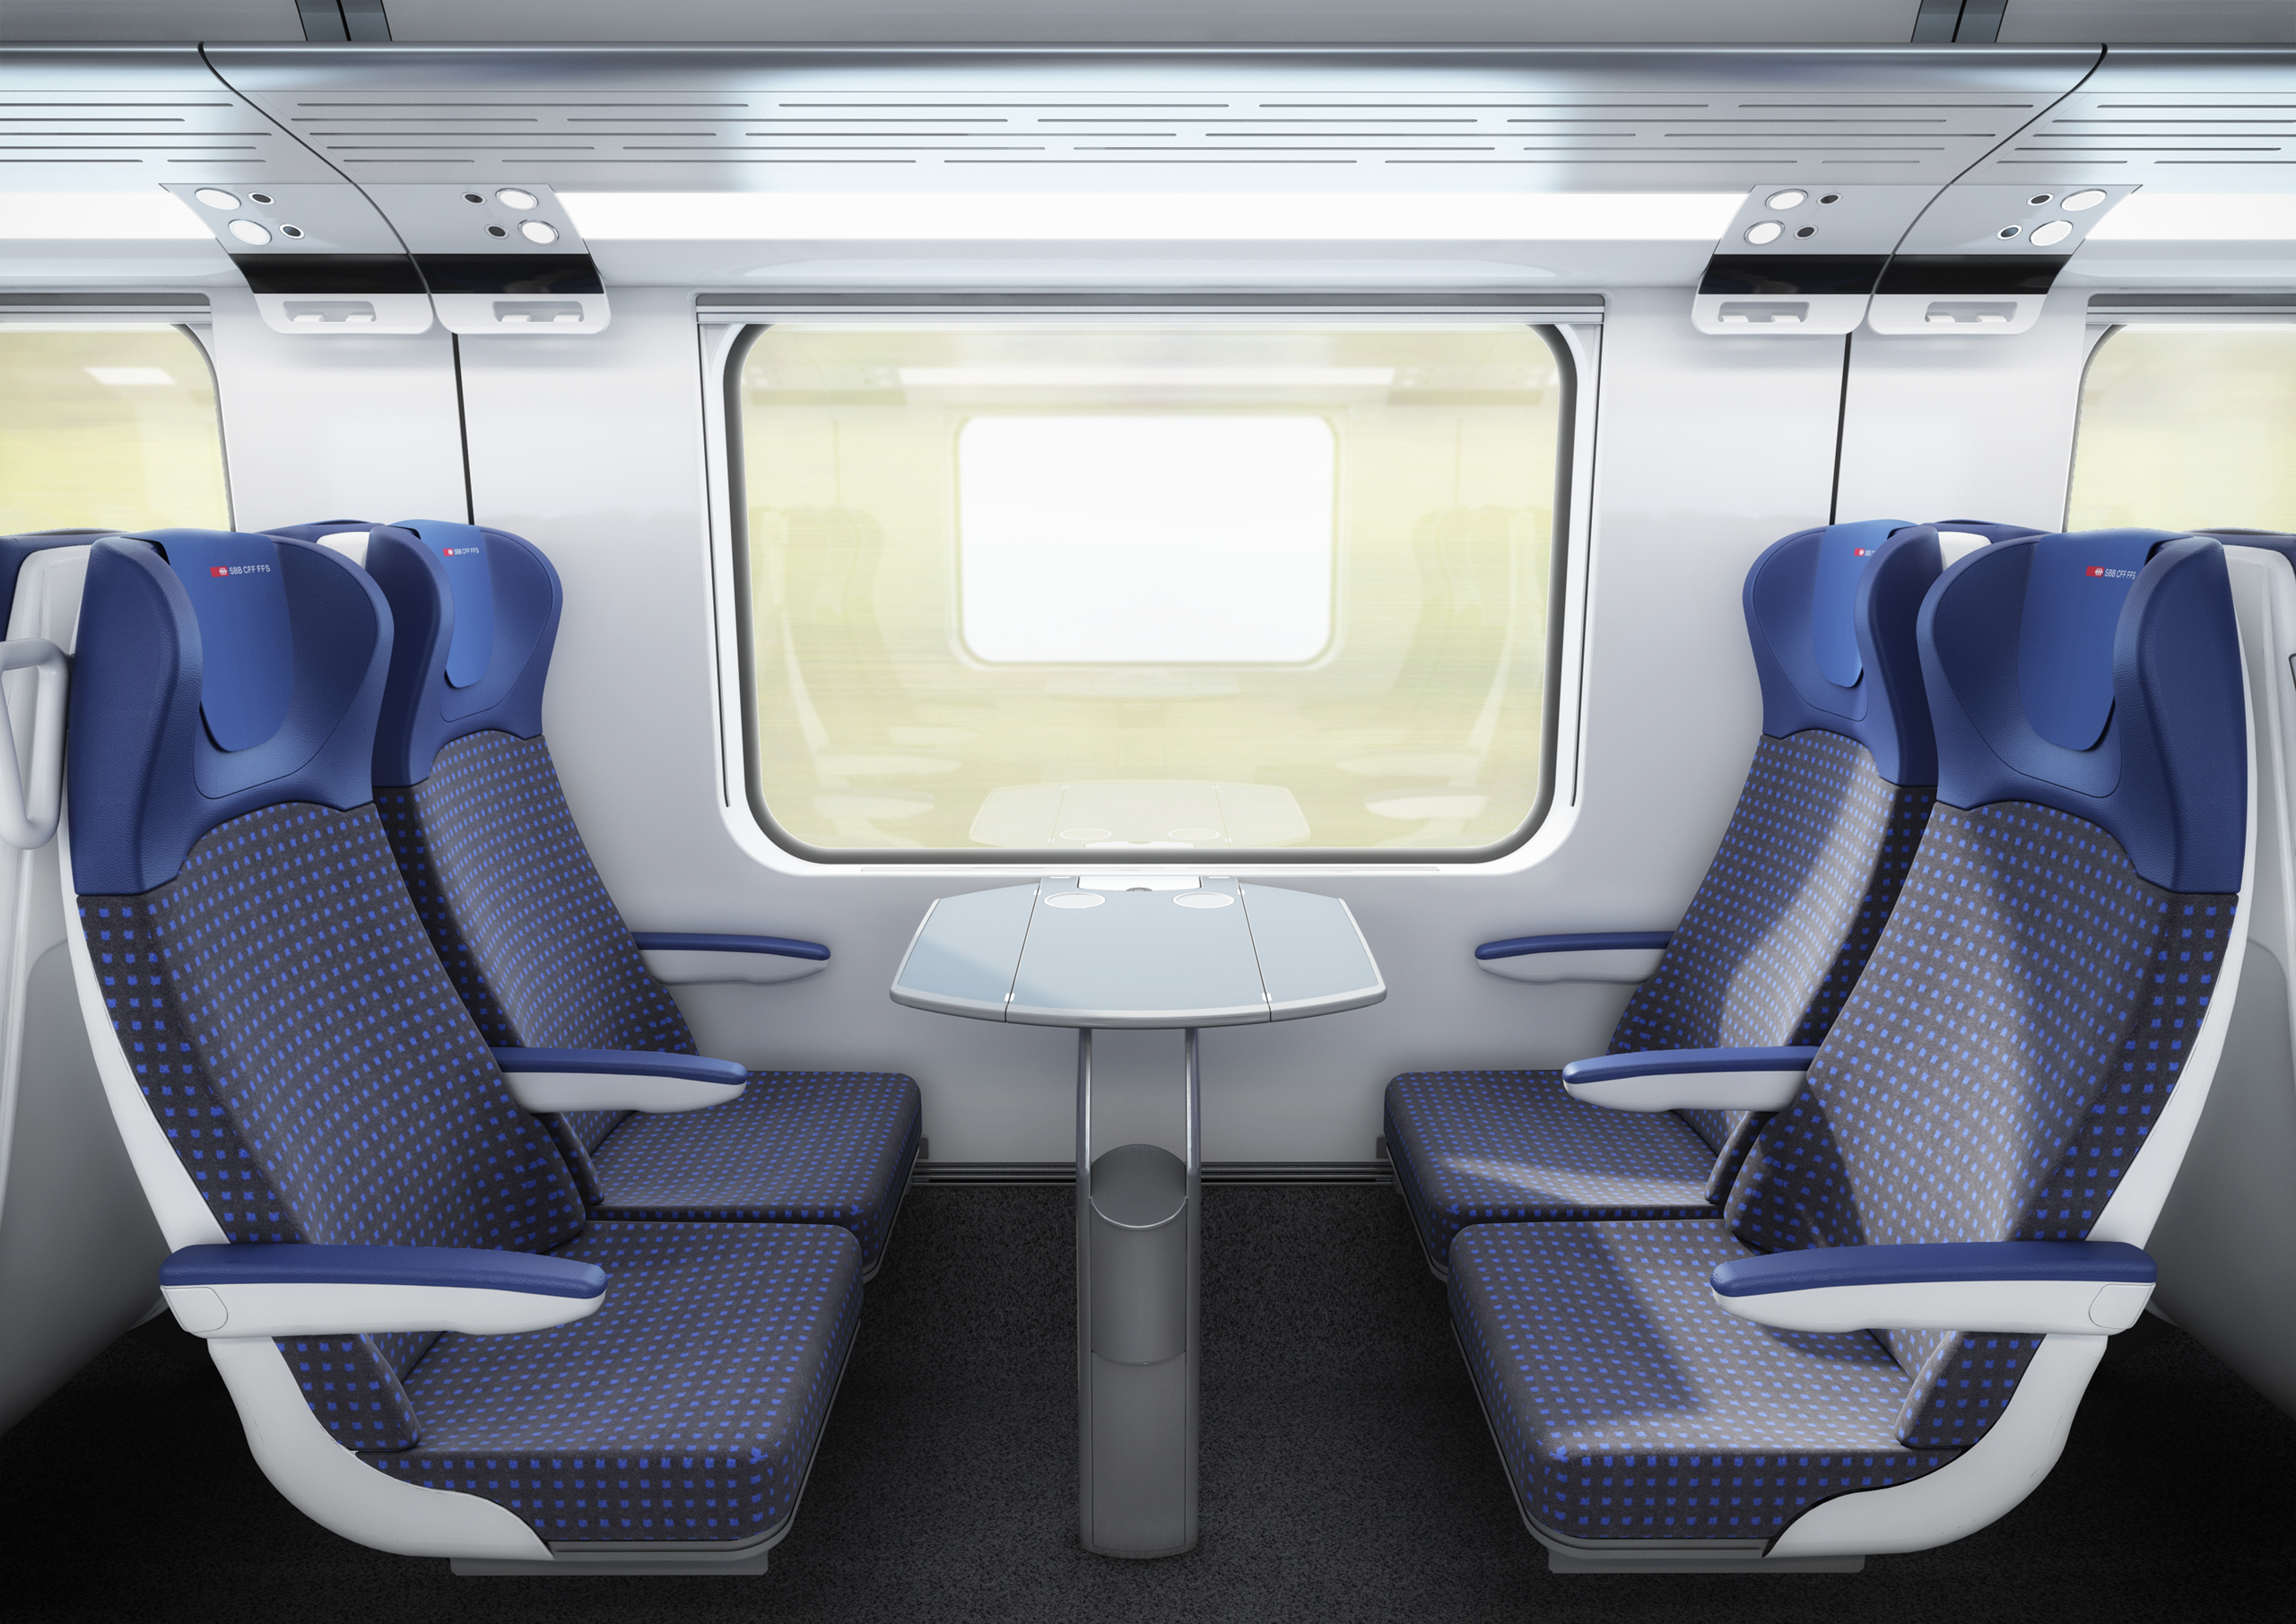 Design Interieur Tgv 1000 43 Images About Train Interior Concepts On Pinterest